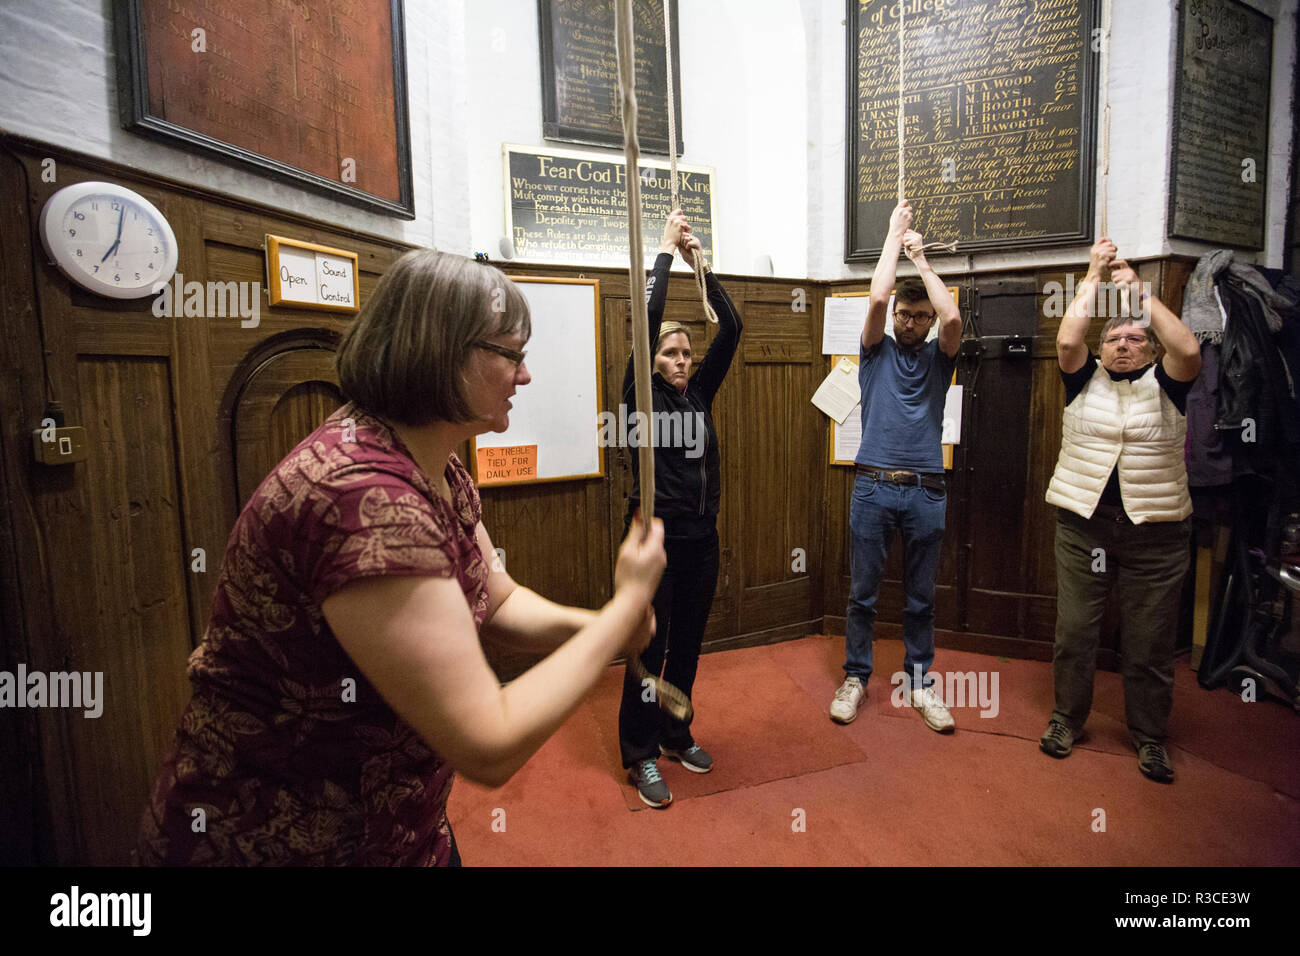 Church bell-ringers ahead of Remembrance Day practice their bell-ringing at St Mary's Church, Rotherhithe, Southeast London, United Kingdom Stock Photo